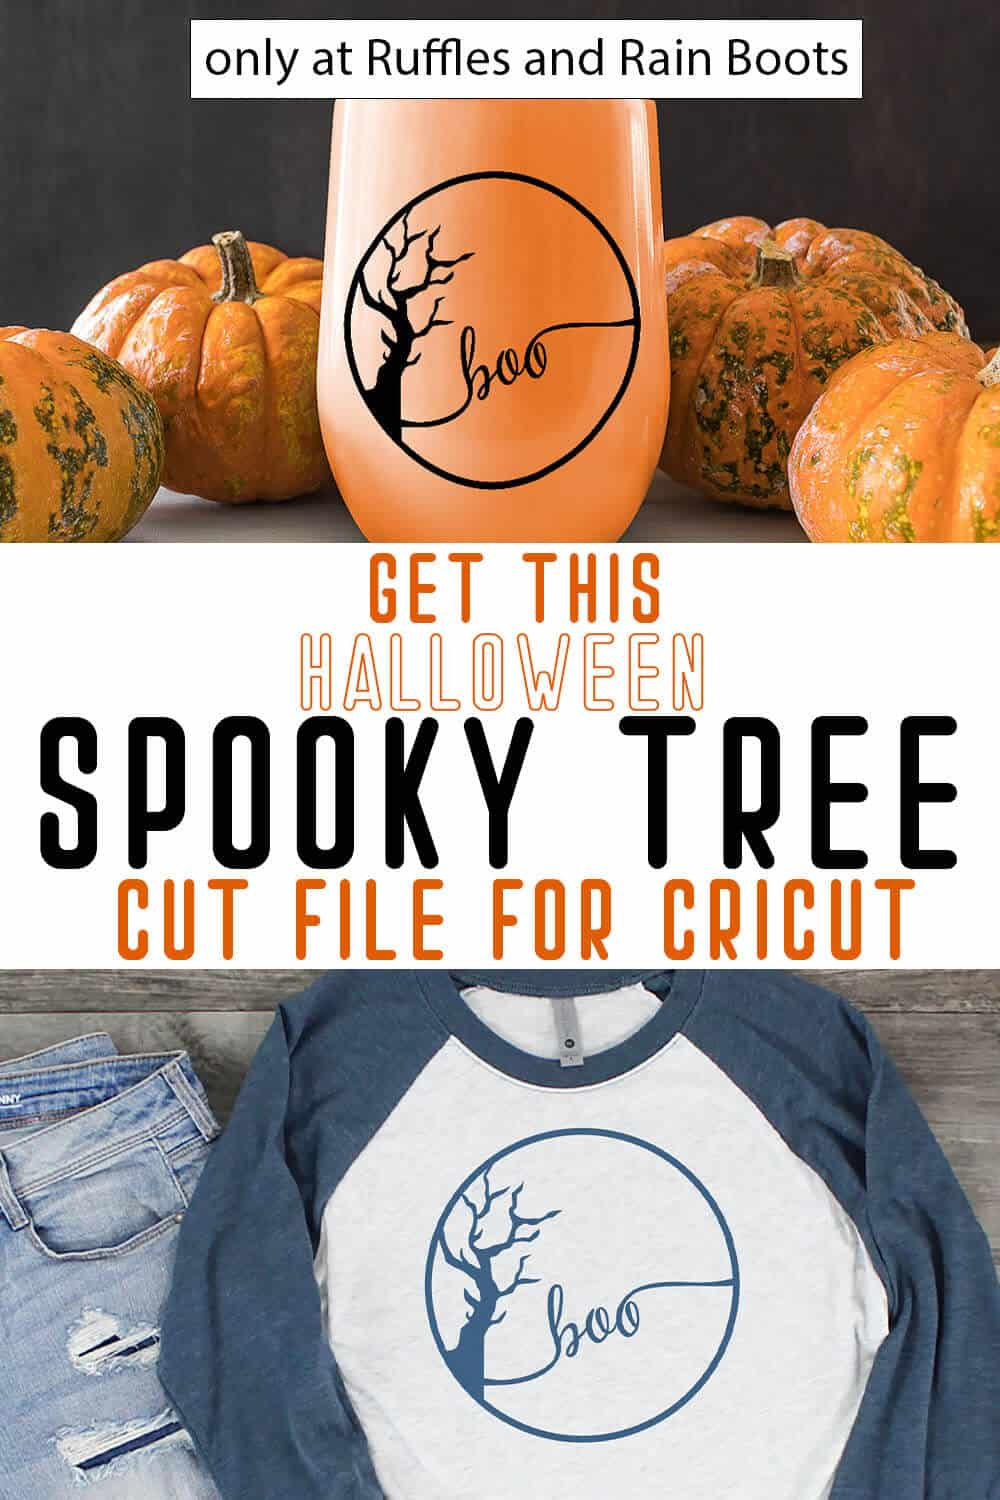 photo collage of easy to weed cricut cut file for halloween with text which reads get this halloween spooky tree cut file for cricut